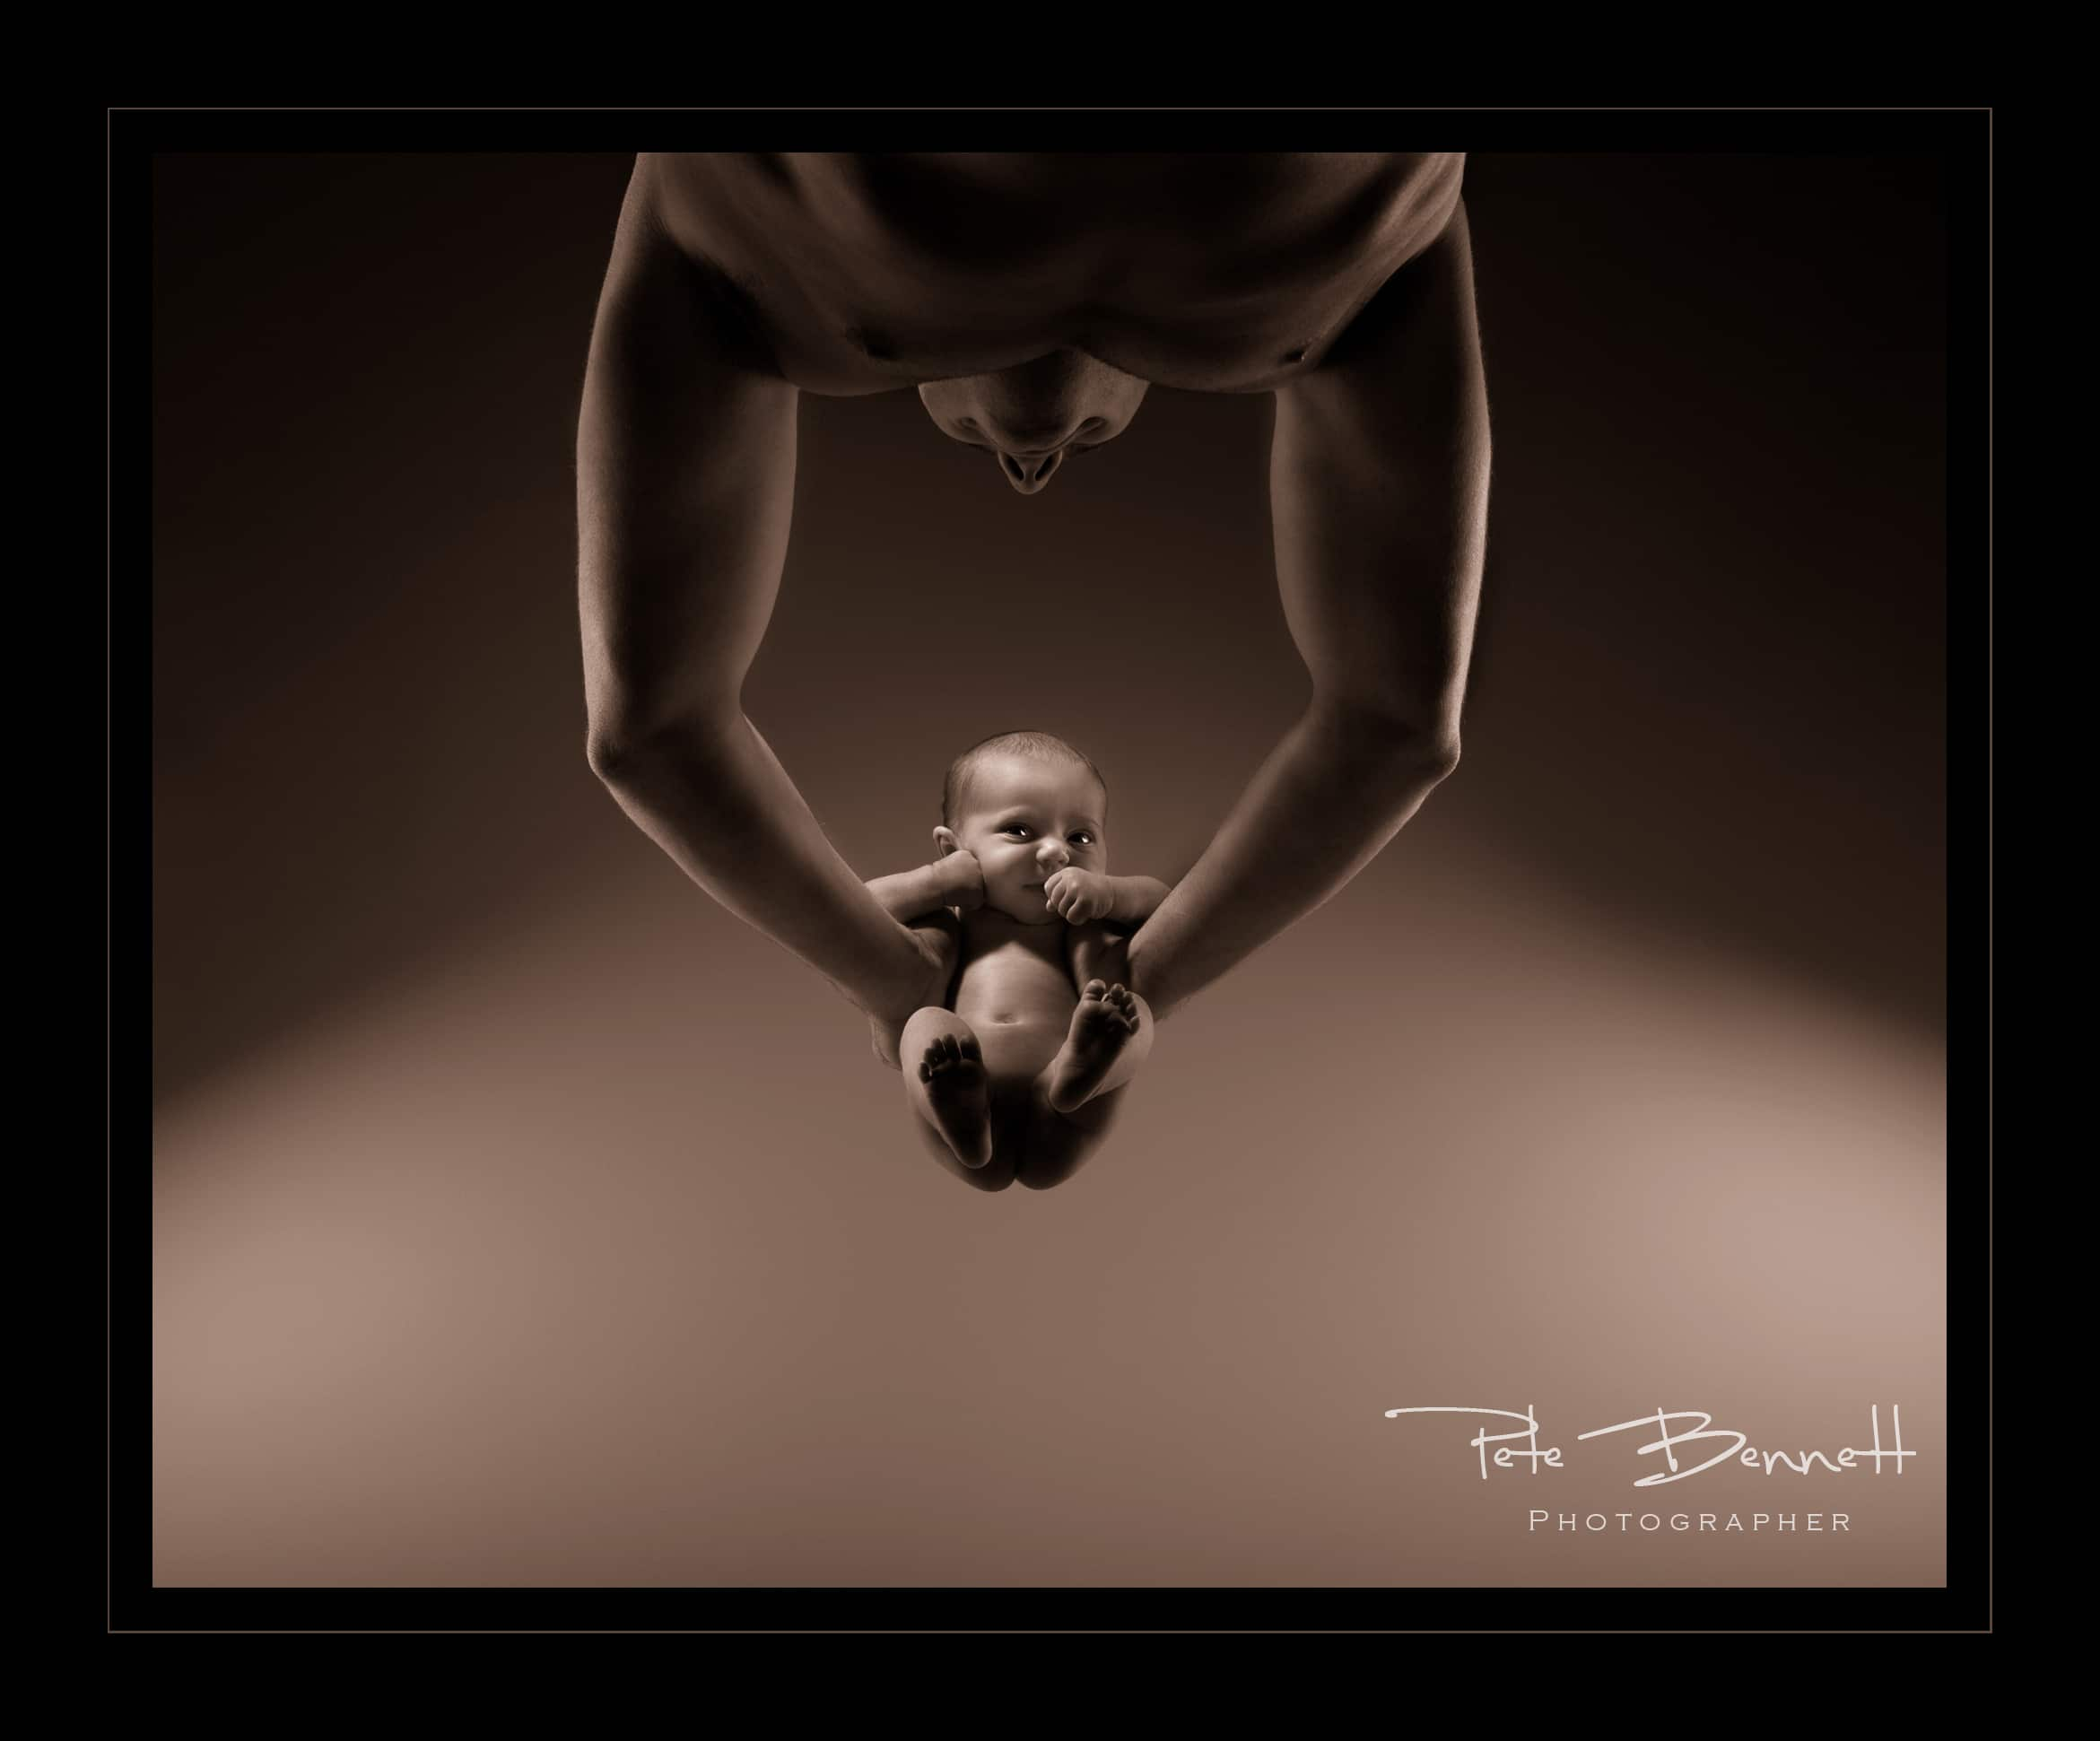 Pete Bennett photography SWPP GOLD Baby category August 2013